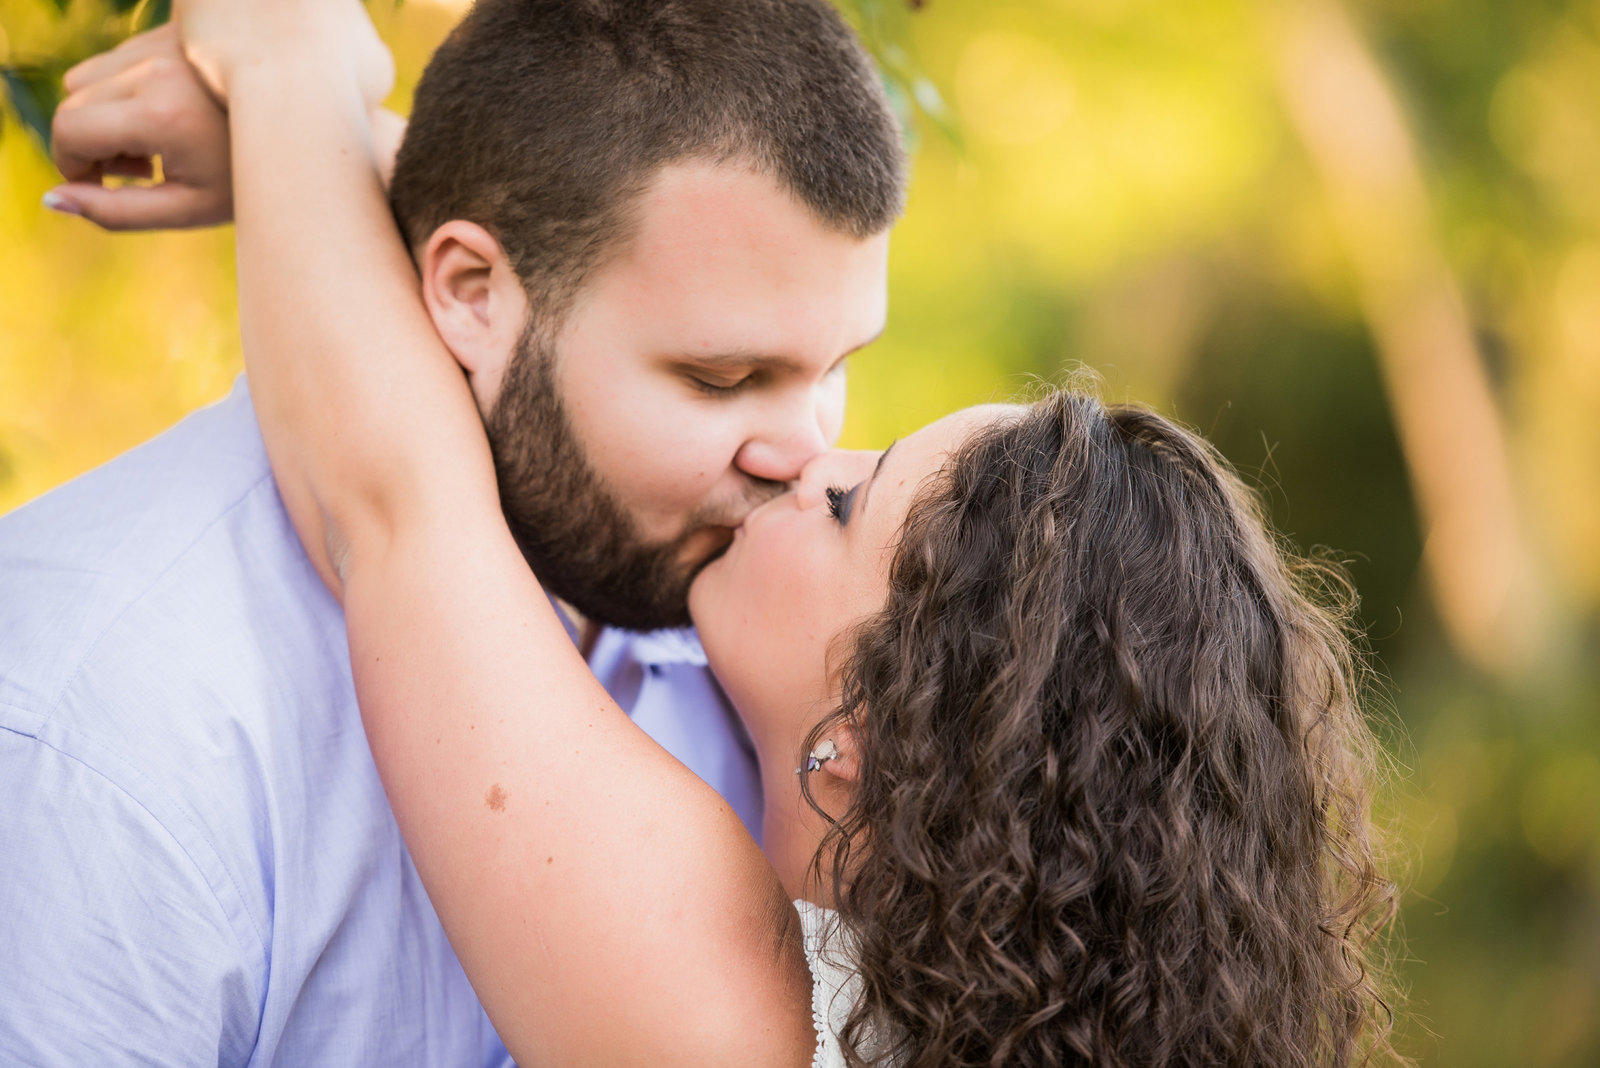 NJ_Rustic_Engagement_Photography093